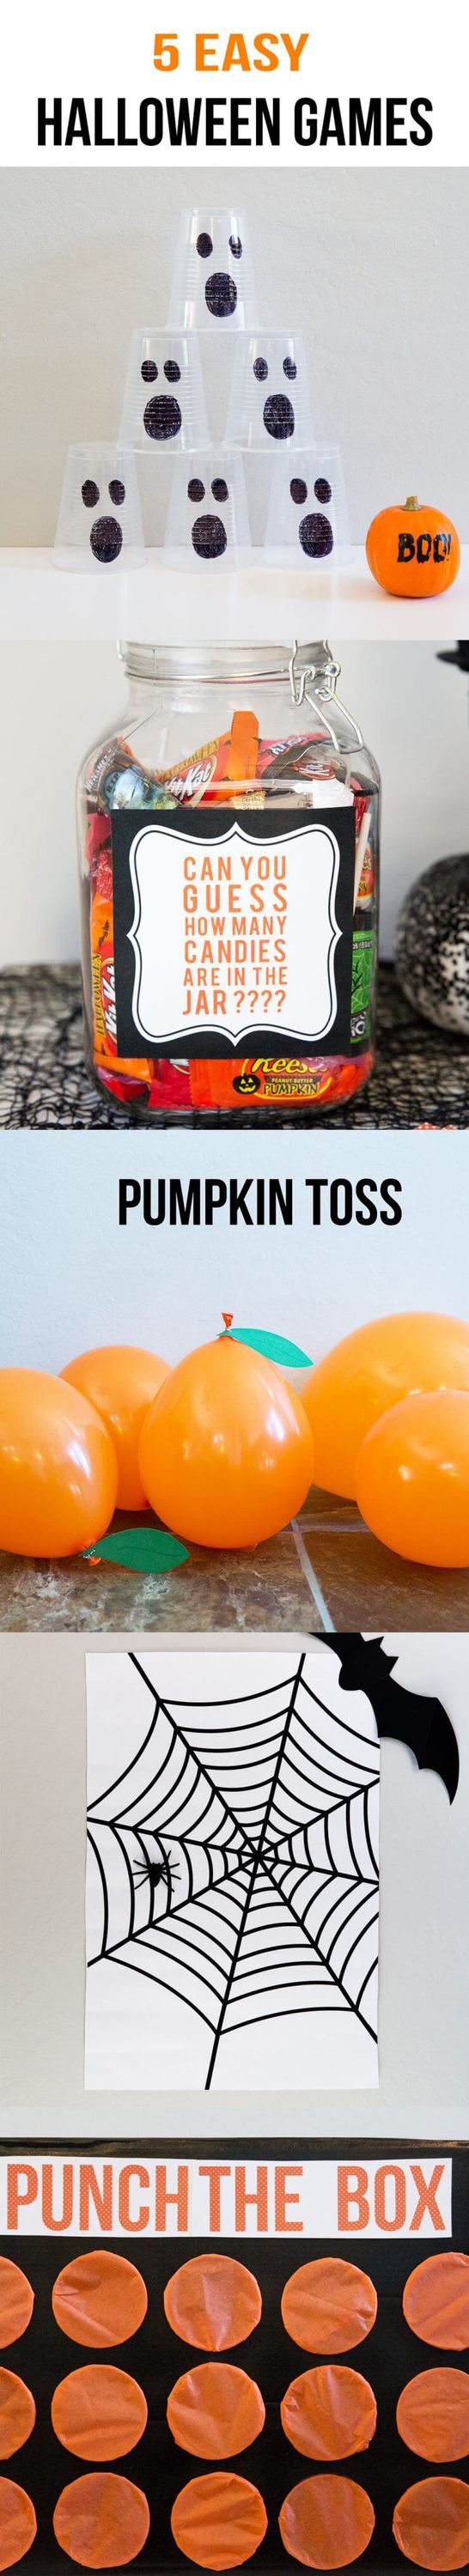 5 EASY Kids Halloween Games... so many fun things to do for your next Halloween gathering!